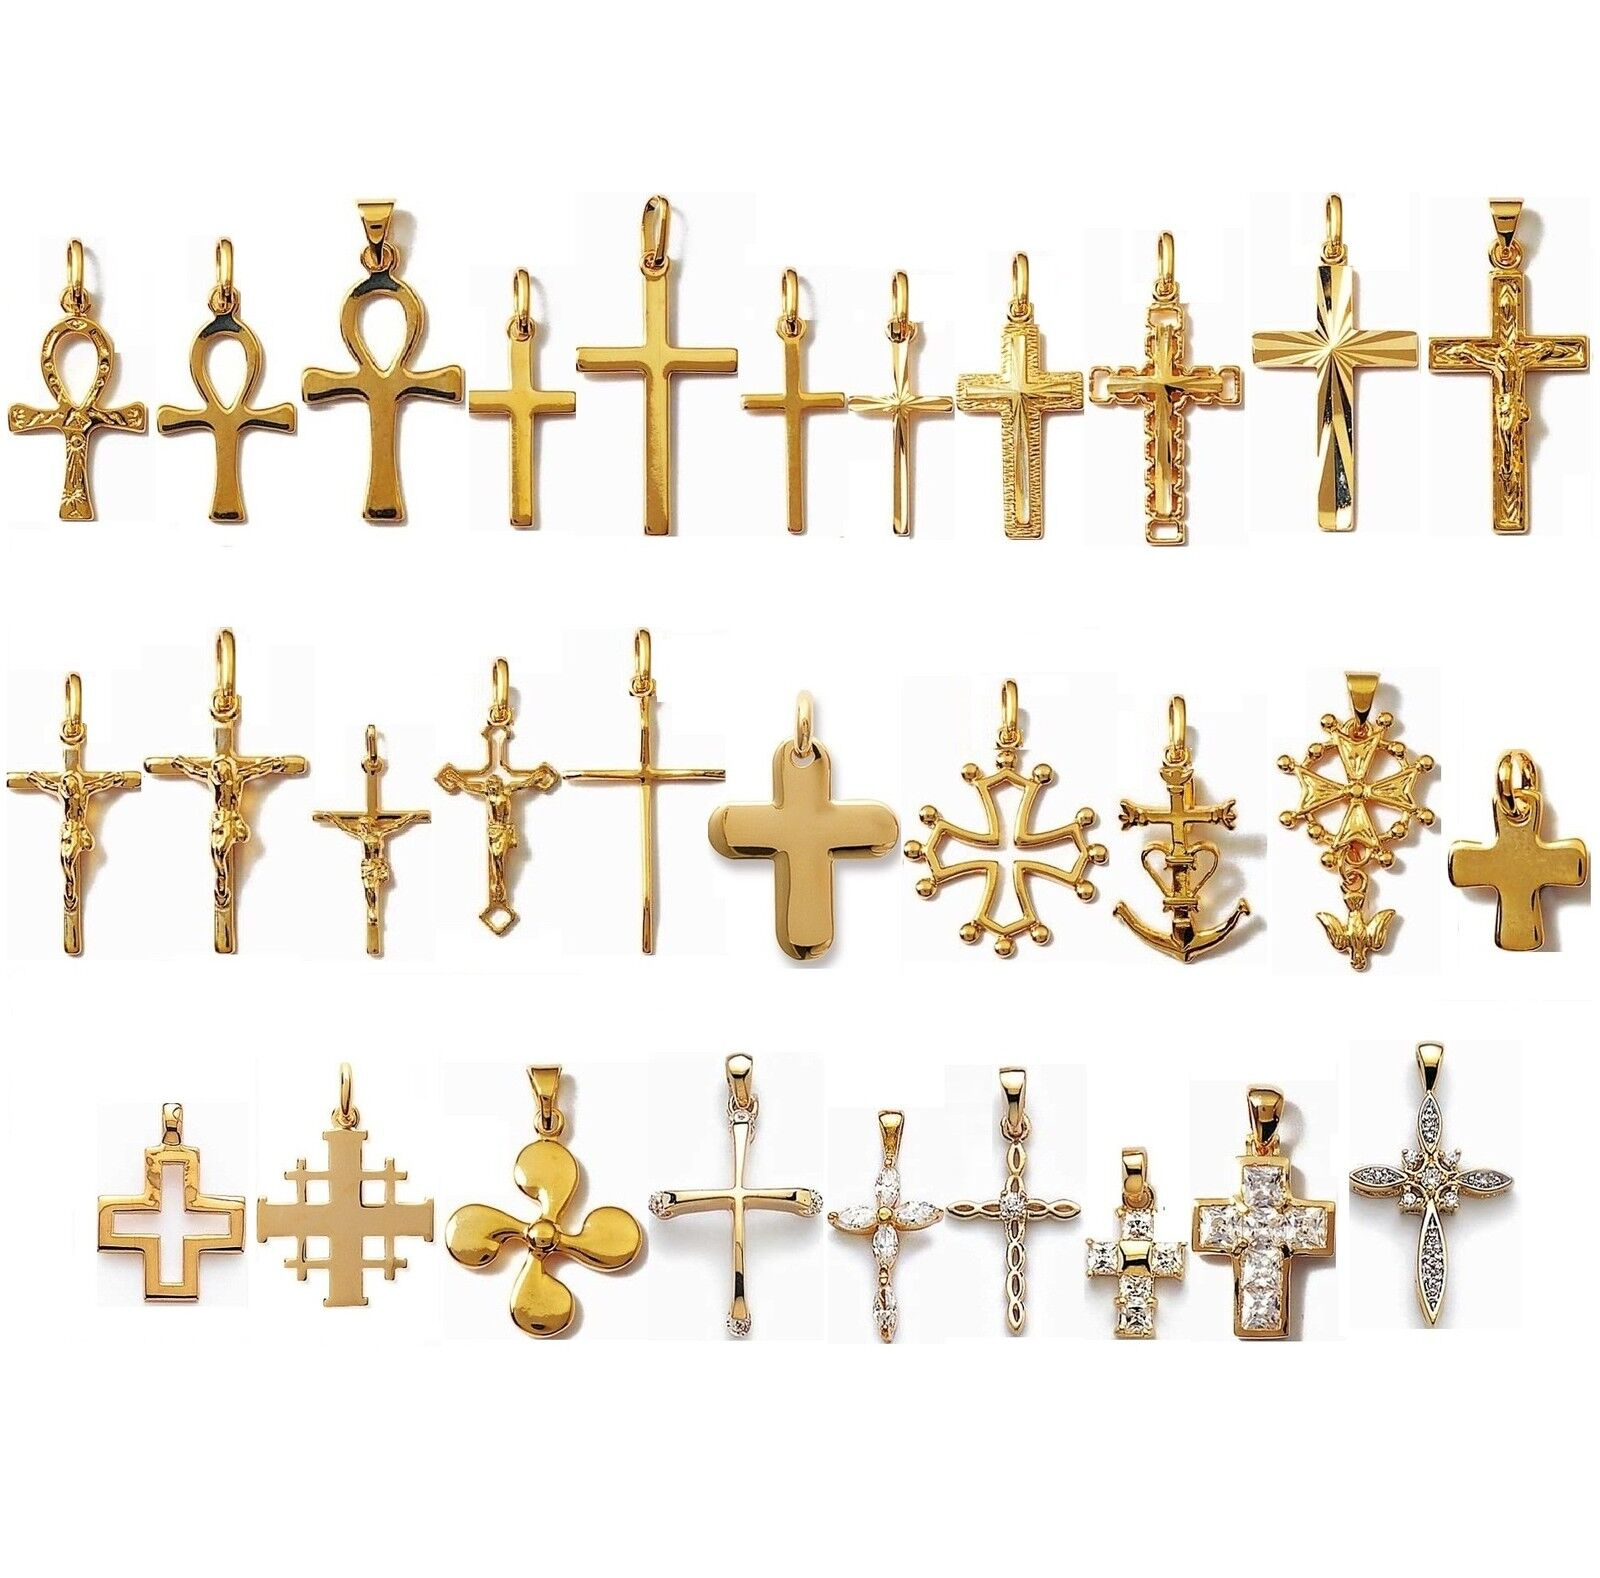 CROSS PENDANT gold plated GUARANTEED NEW 30 Models of your choice